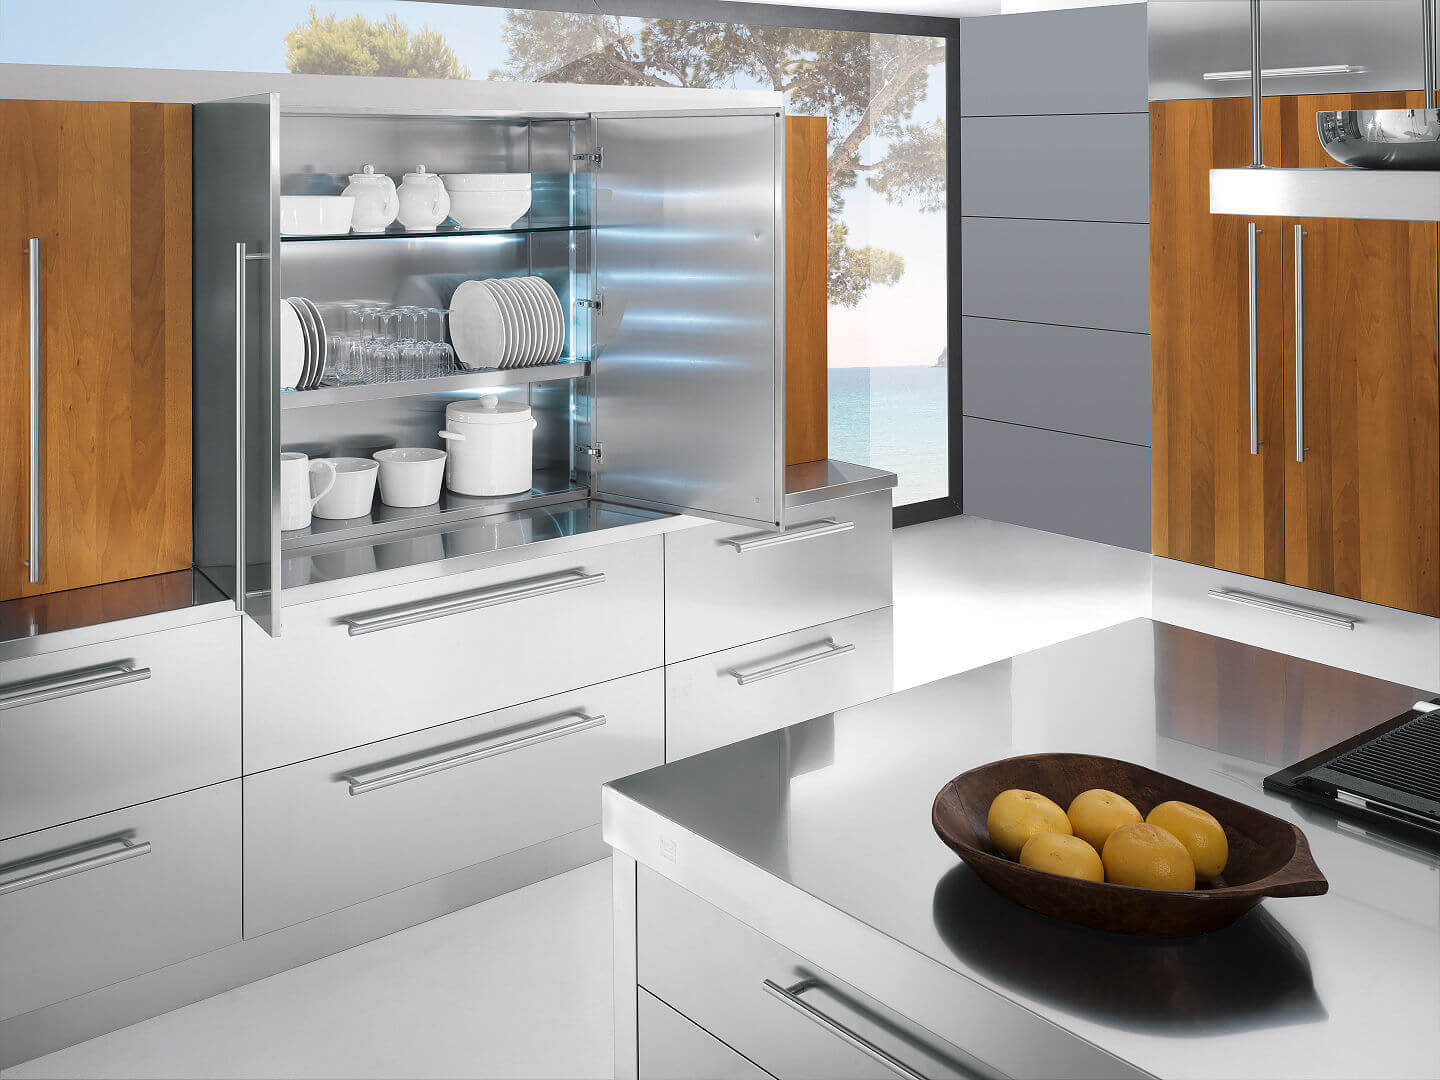 Arca Cucine Italy - Domestic stainless steel kitchens - 23 - Barn a- 004